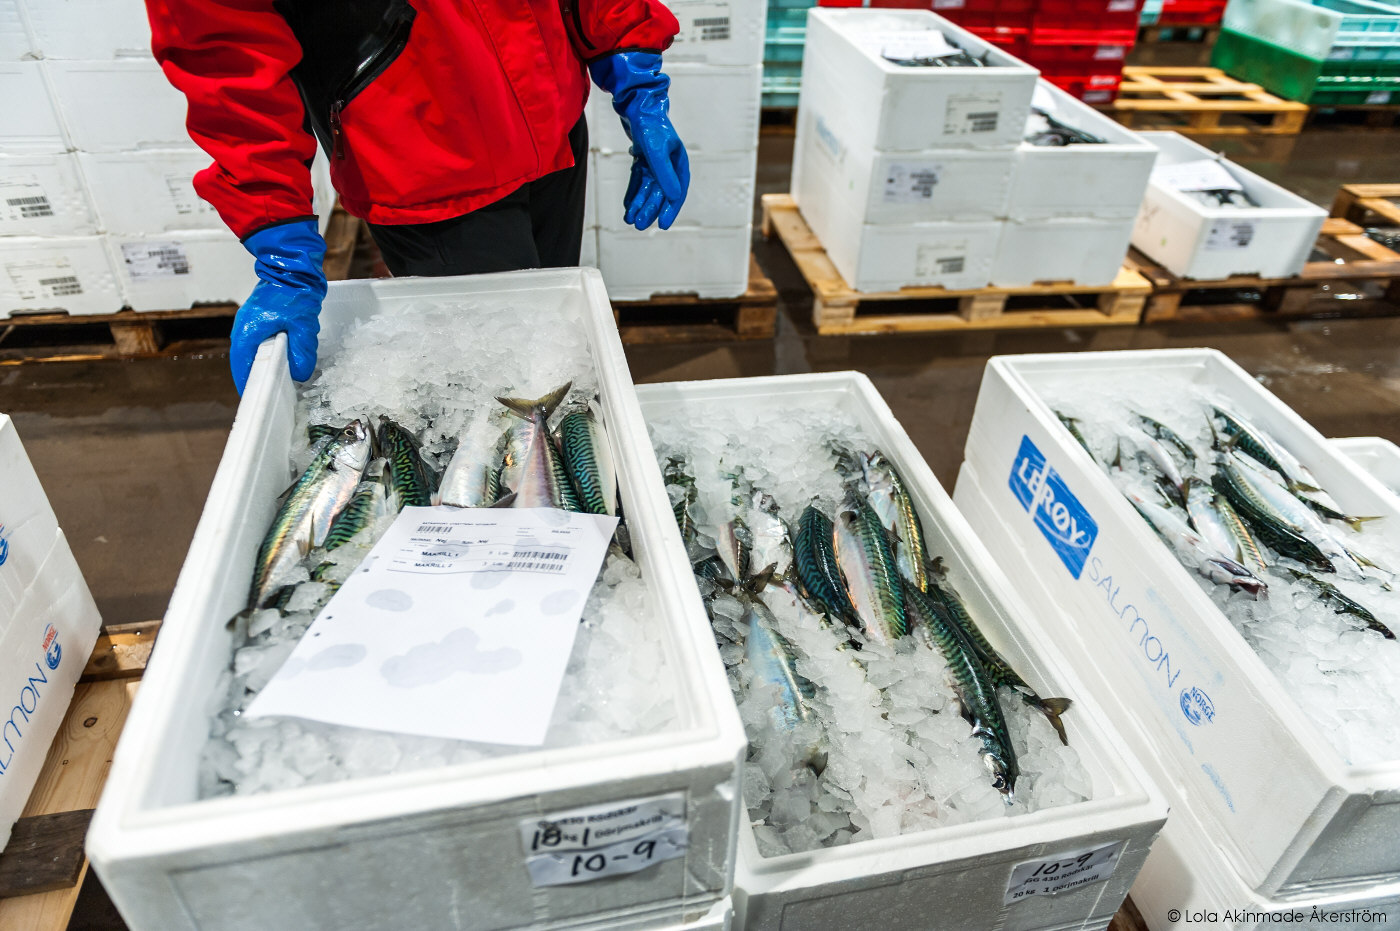 Photos from the Gothenburg Fish Auction